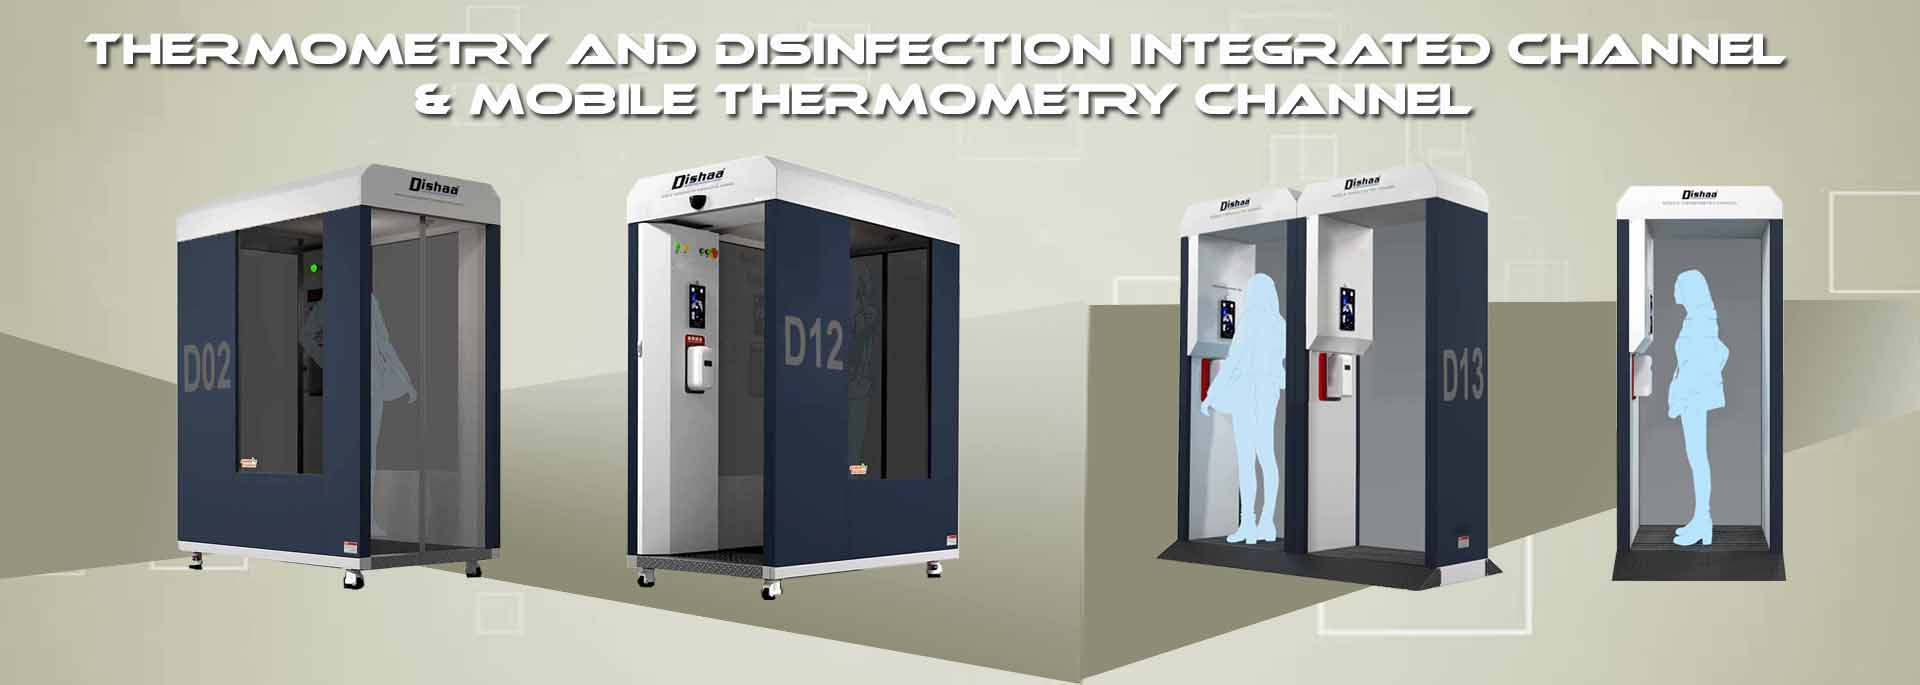 THERMOMETRY-AND-DISINFECTION-INTEGRATED-CHANNEL